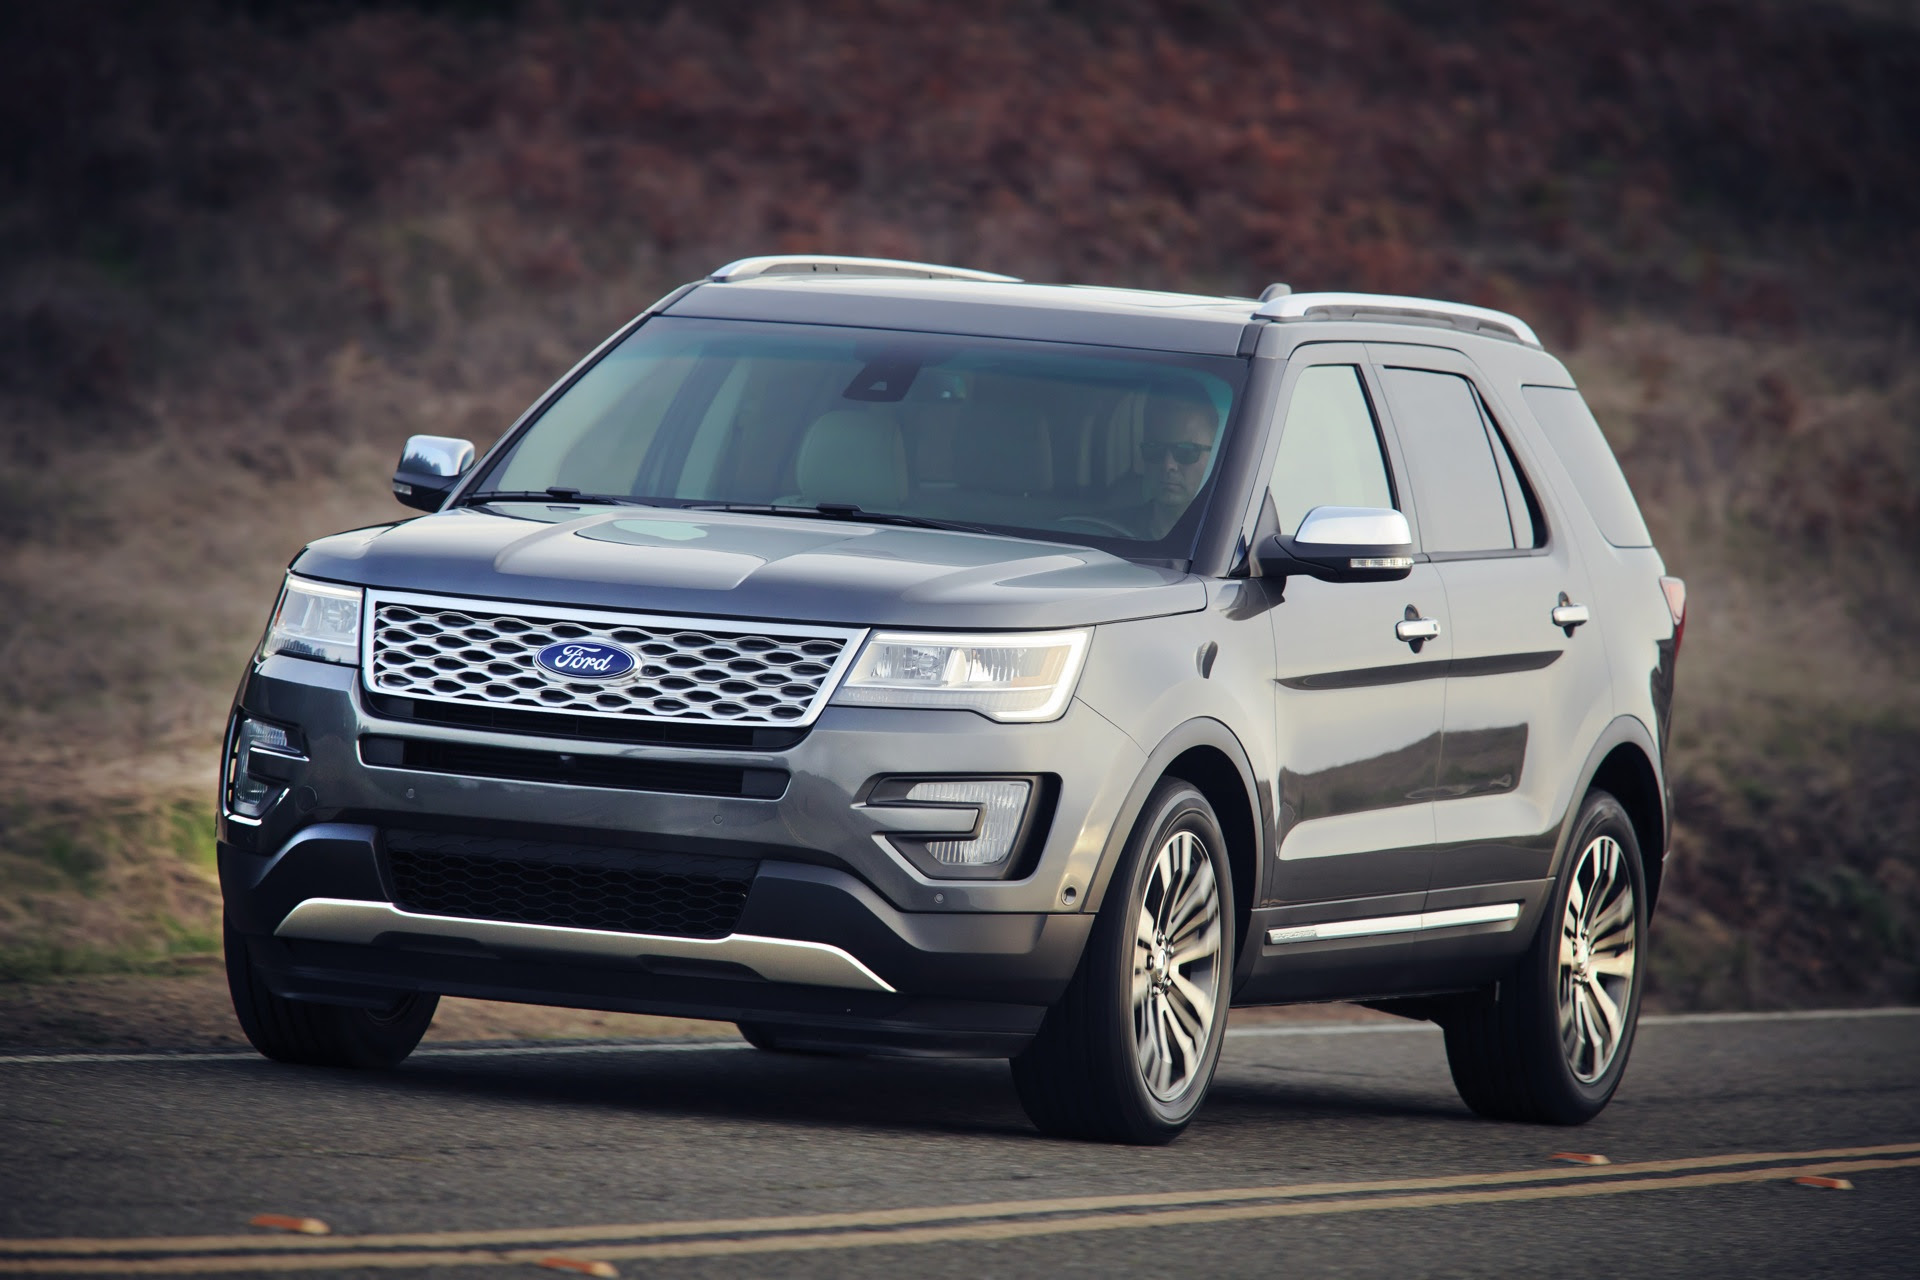 2016 Ford Explorer Review, Ratings, Specs, Prices, and ...